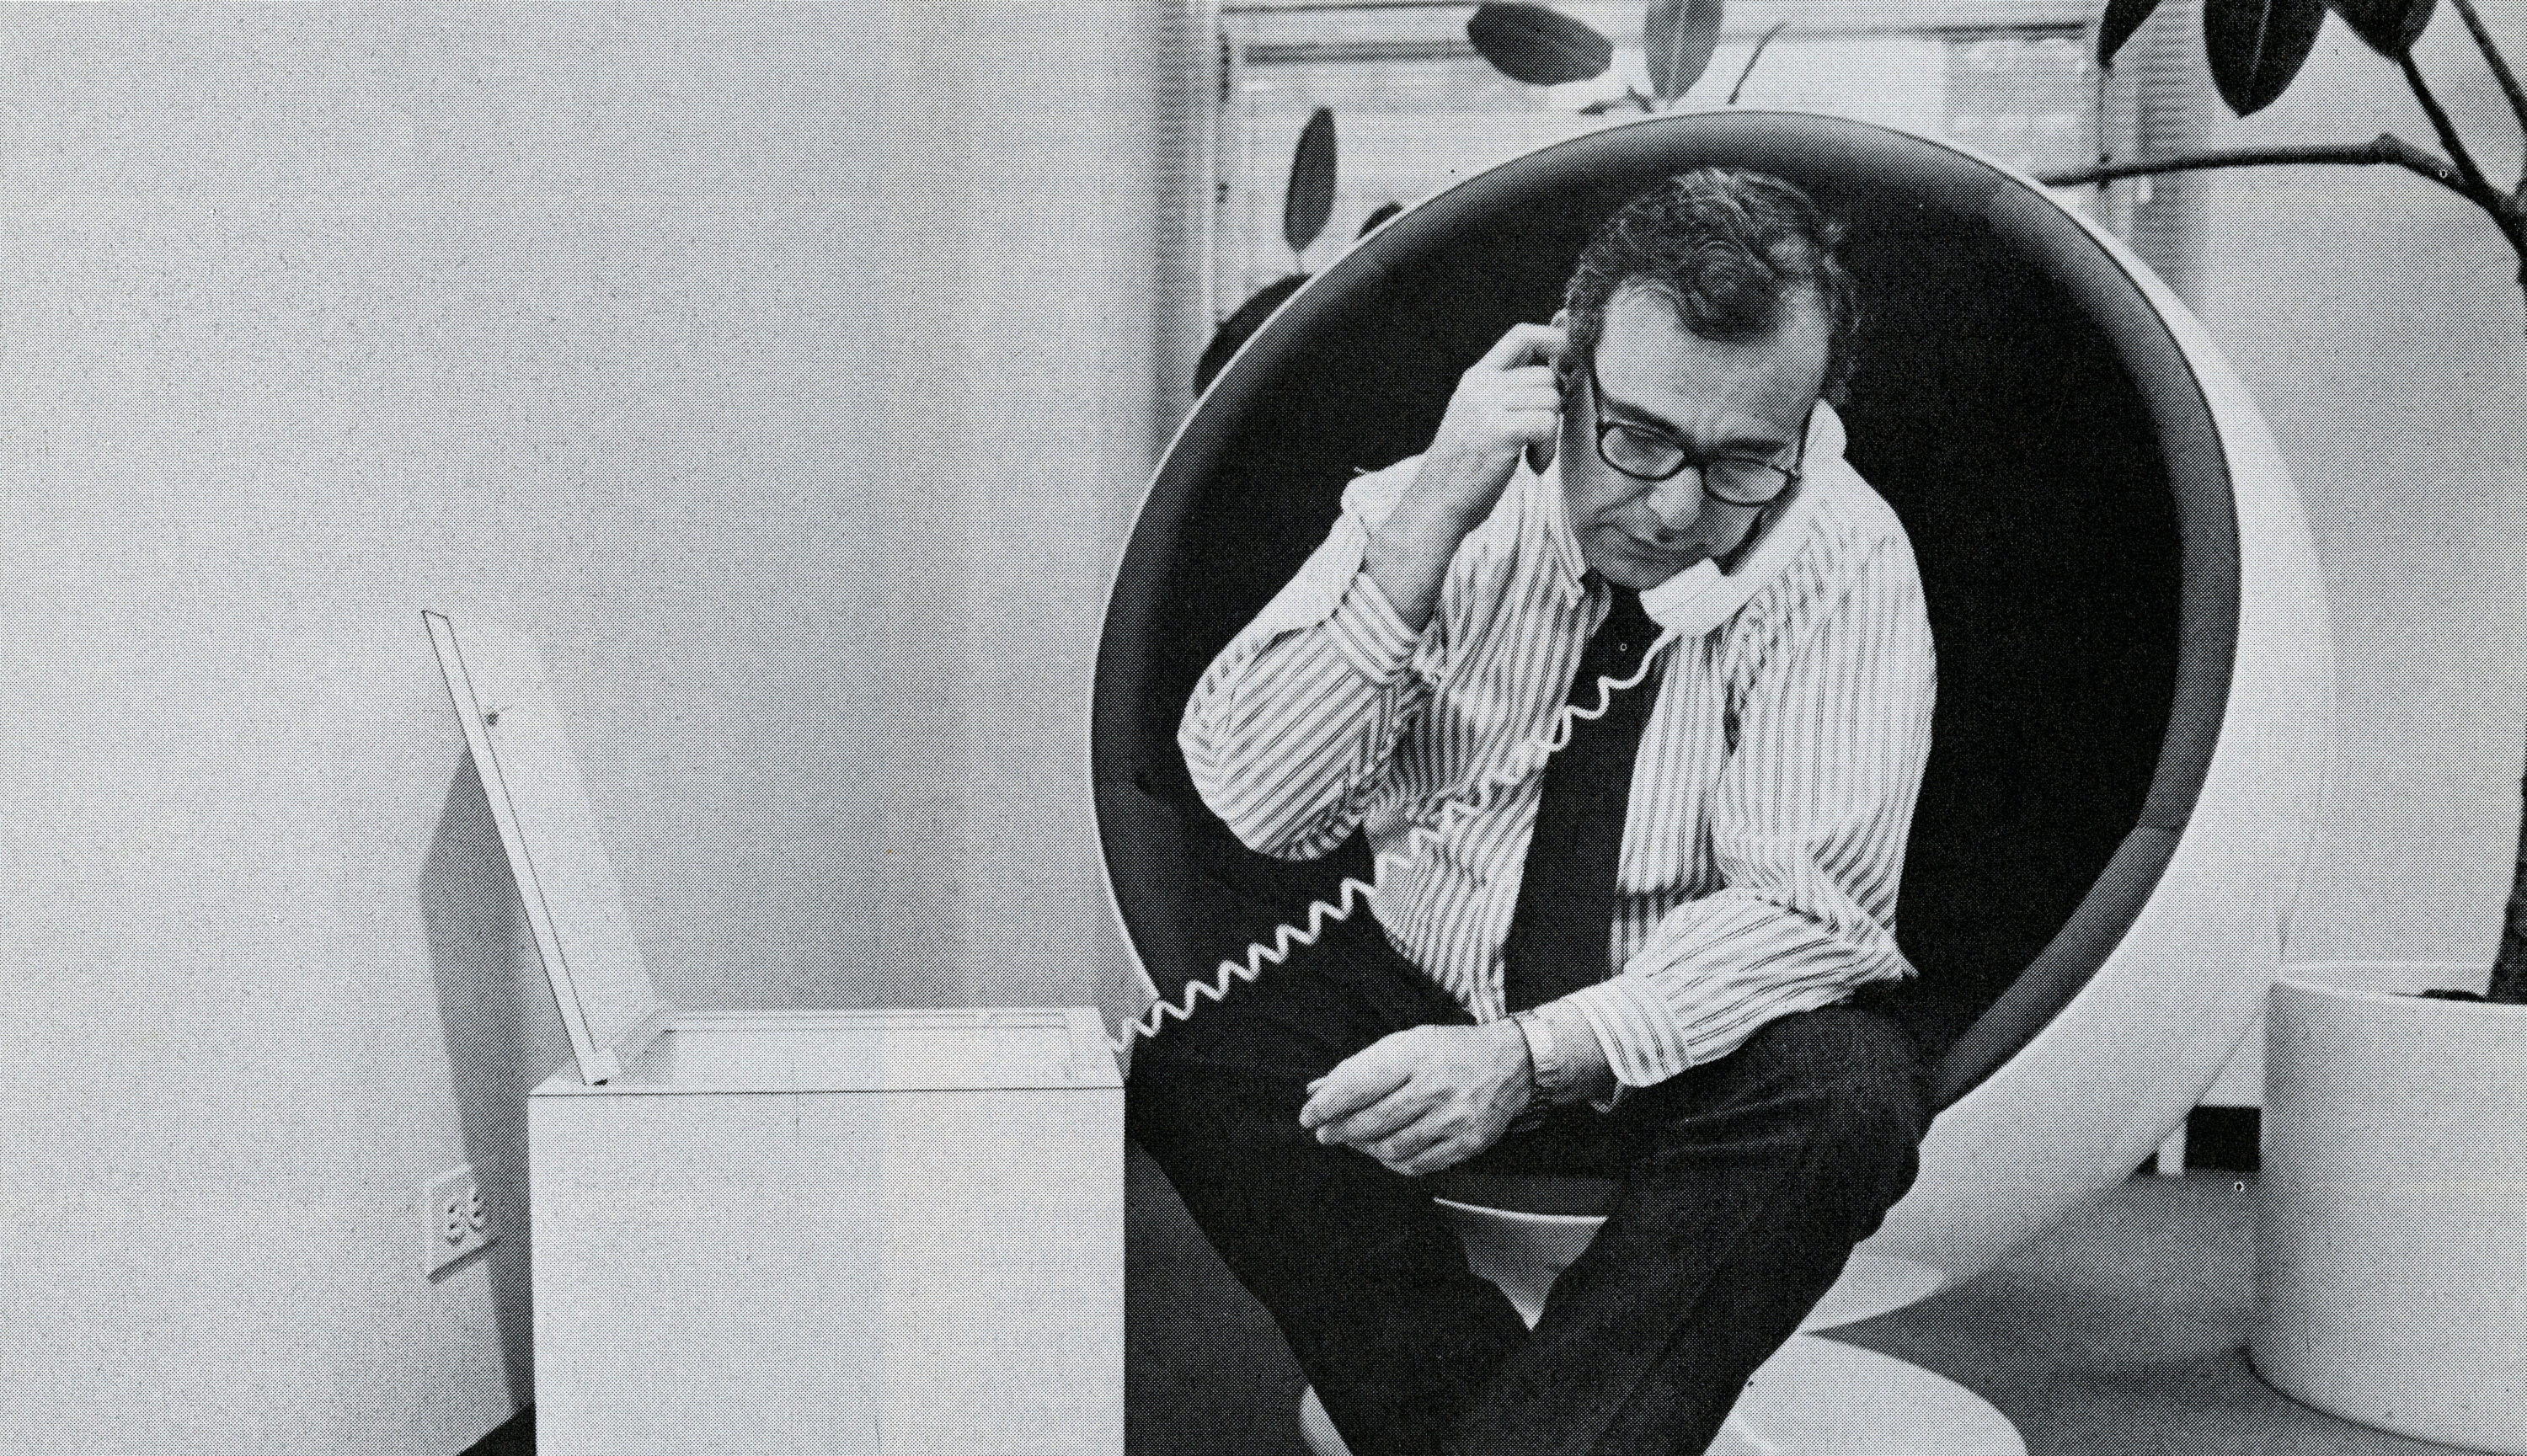 """Donald Rugoff in his office in the 1970s as seen in a still from the documentary """"Searching for Mr. Rugoff."""" (Courtesy Sy Johnson/Film Comment)"""